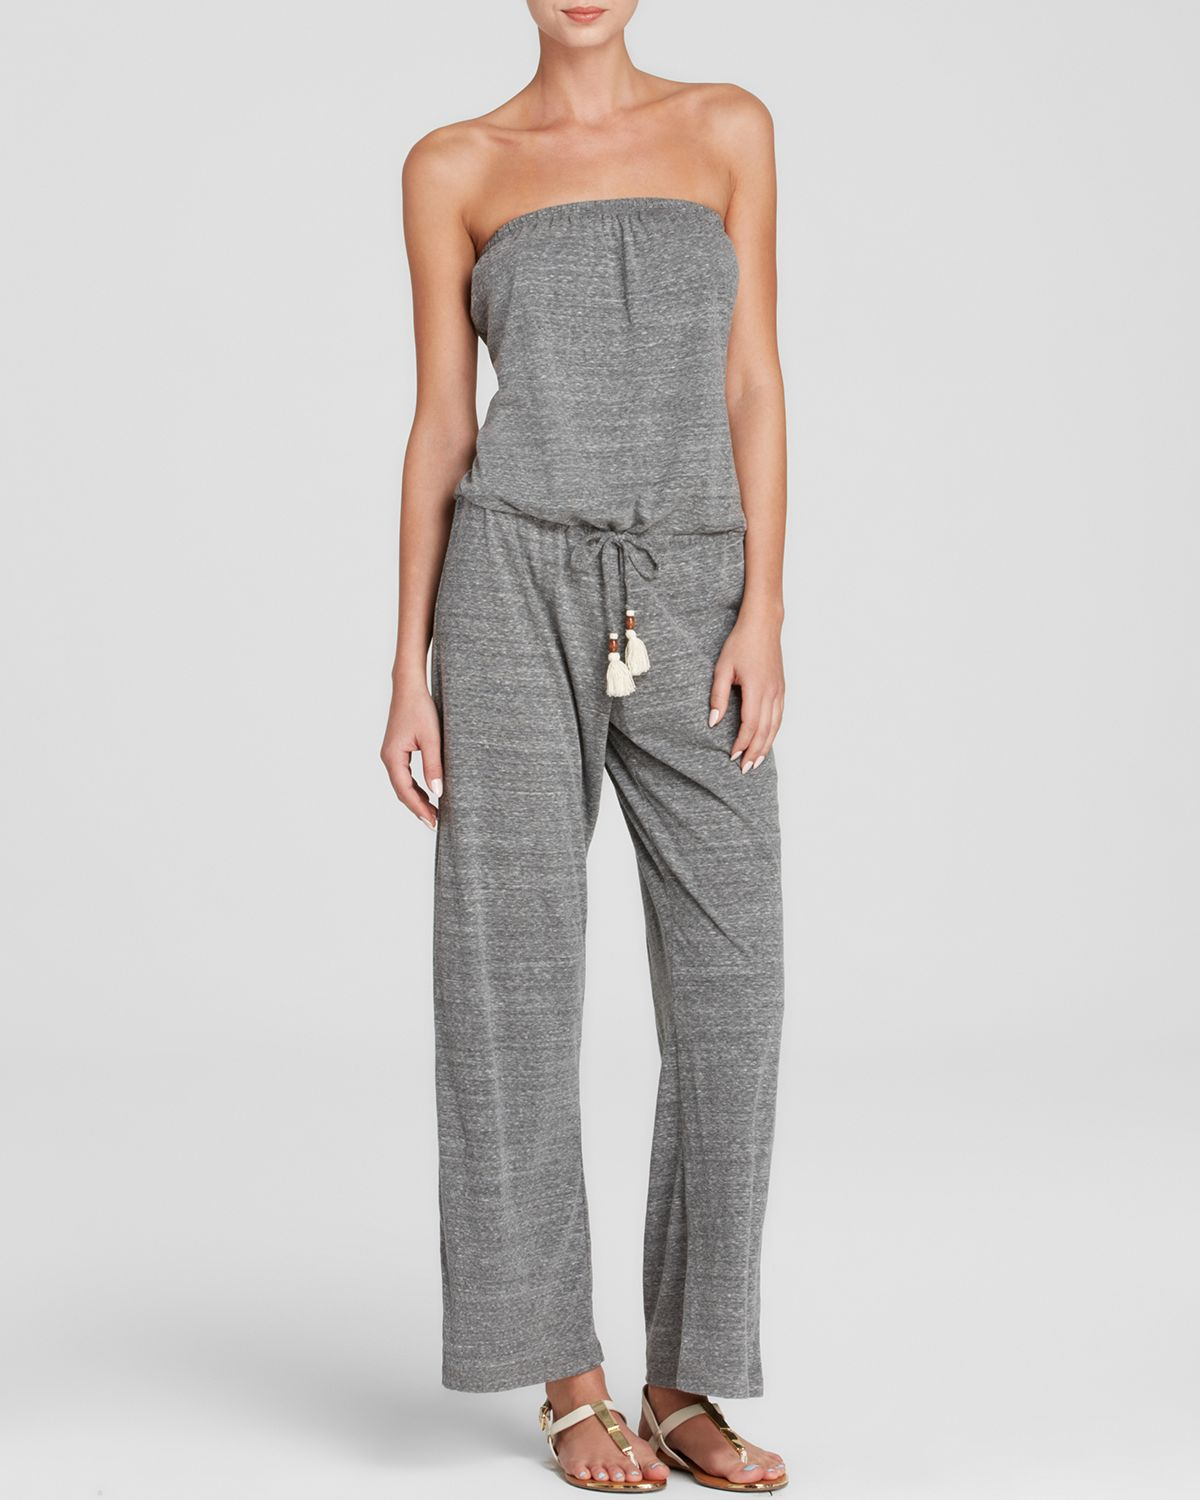 2e0a6d6ffd96 Lyst - Lucky Brand Lace It Up Jumpsuit Swim Cover Up in Gray